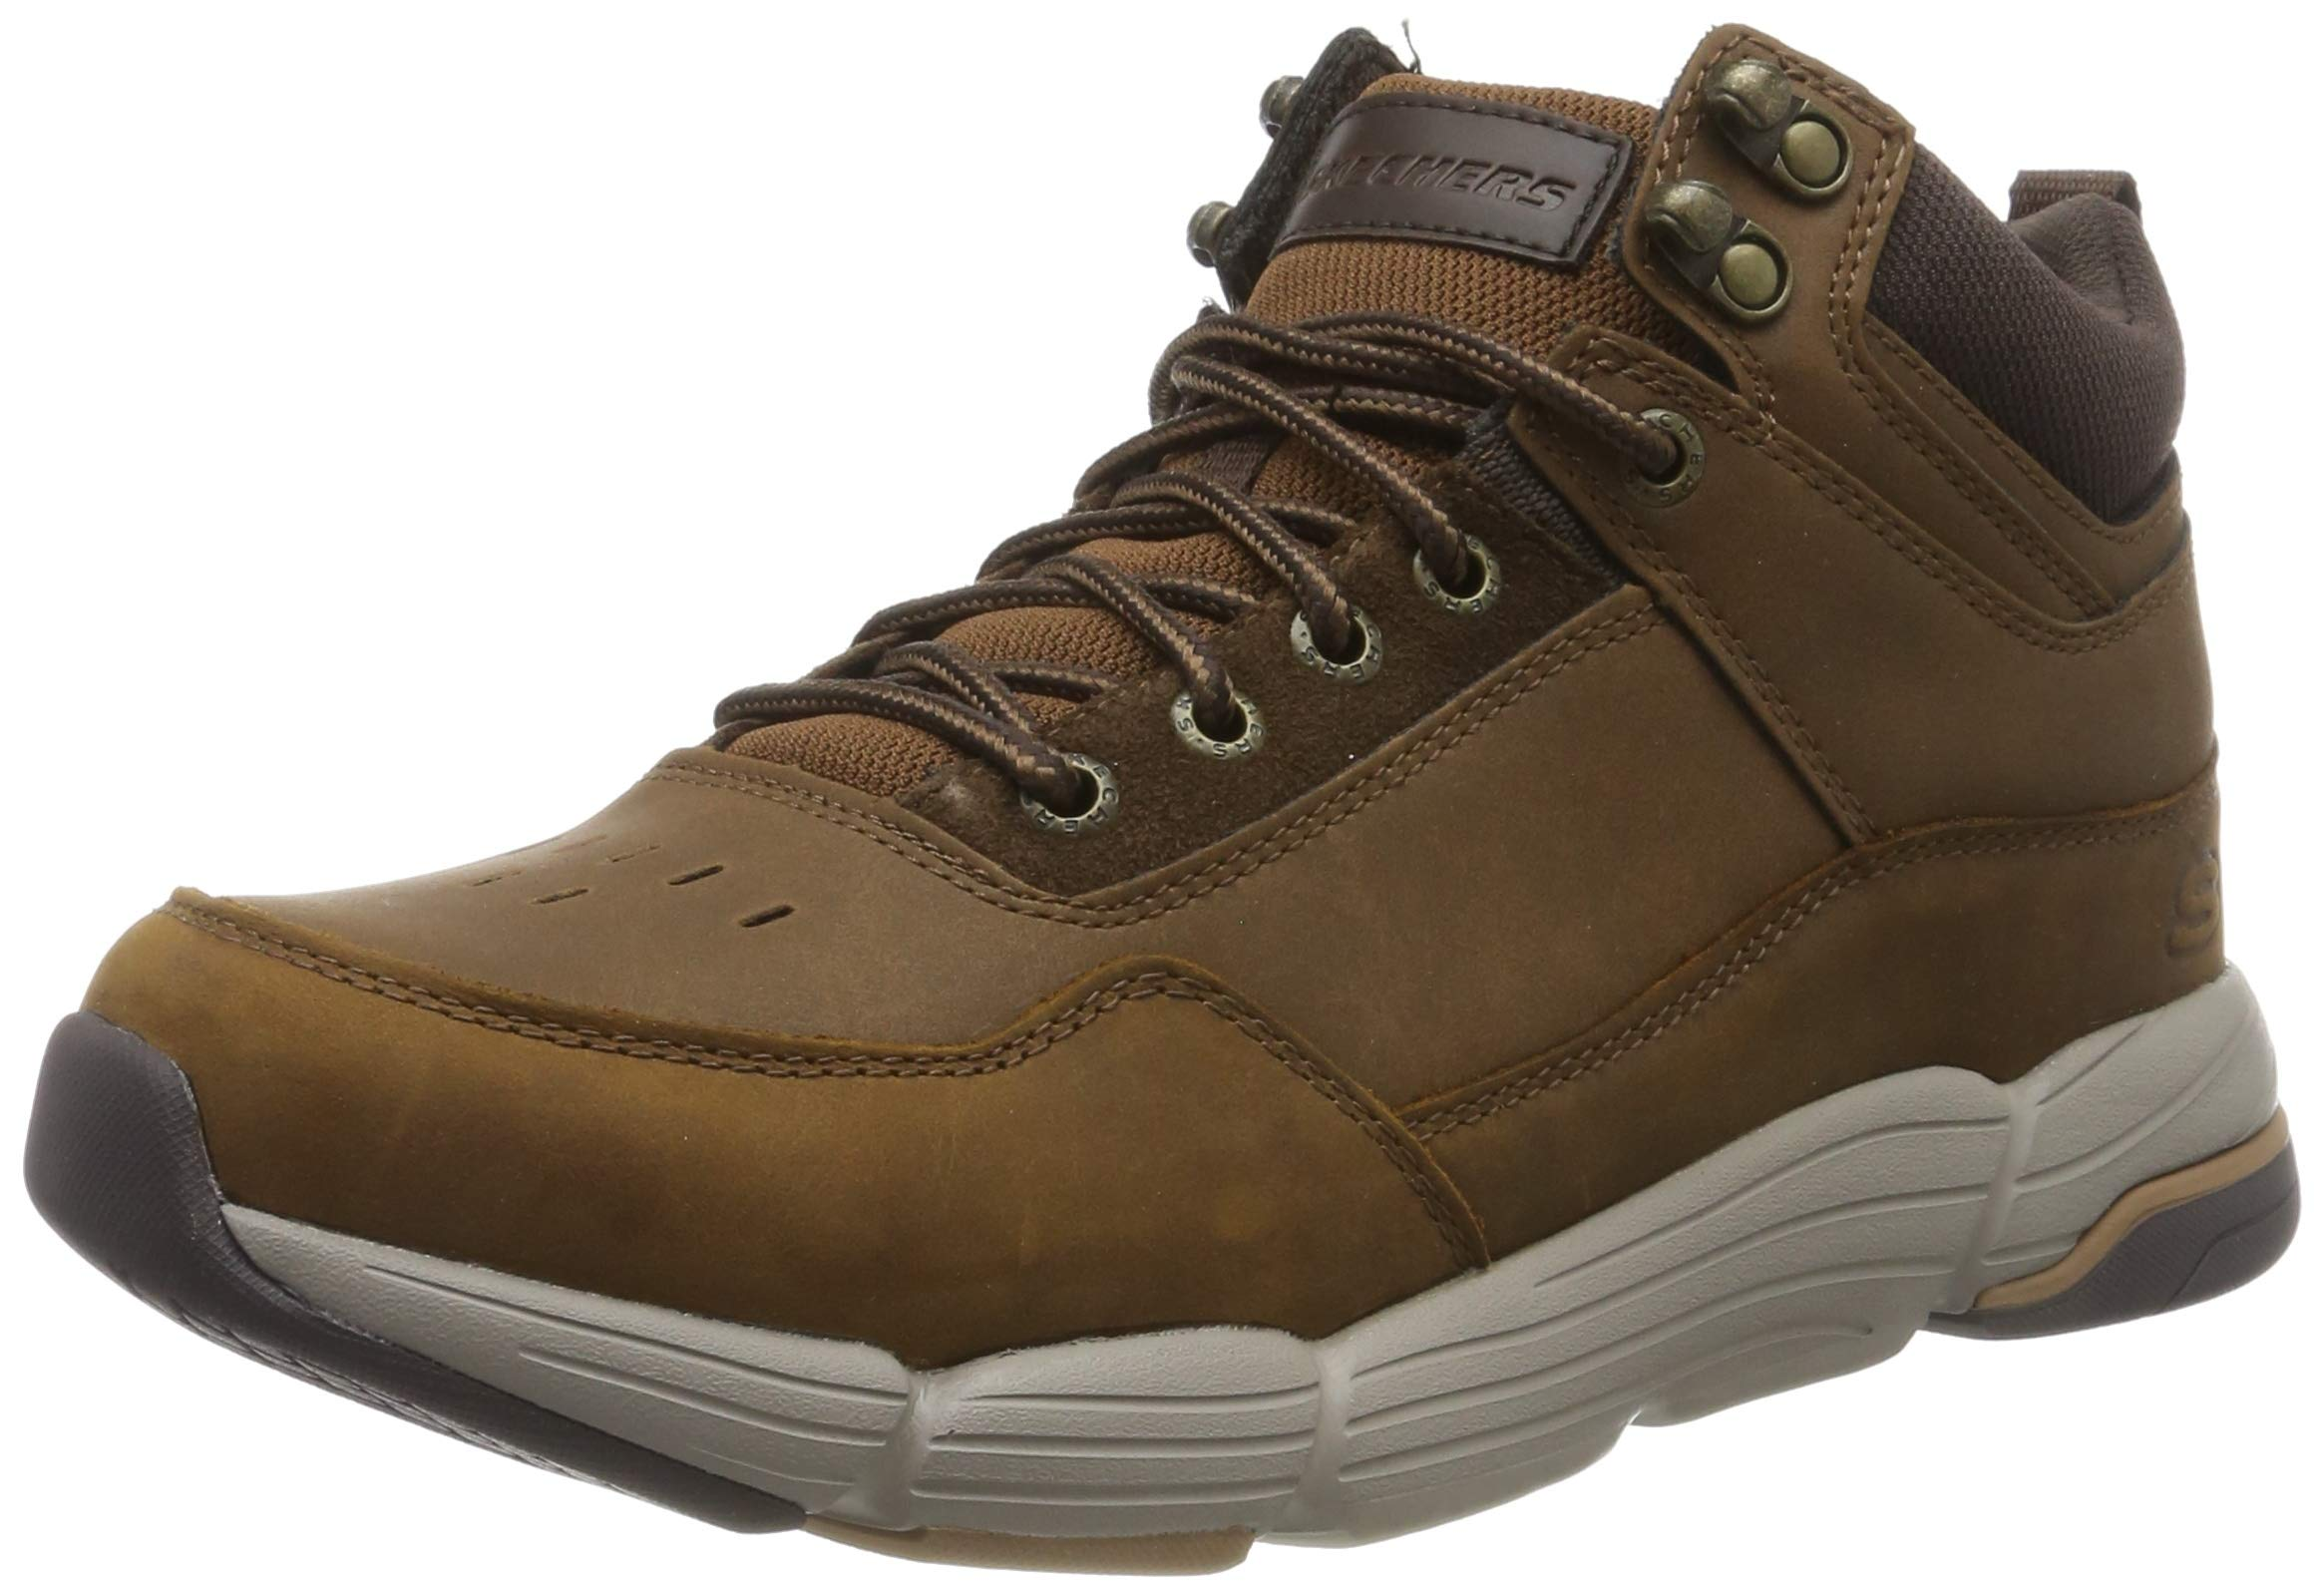 Brown MetcoBottesamp; Cdb39 Skechers Classiques 5 Eu marrondark Bottines Homme Leather doexCB